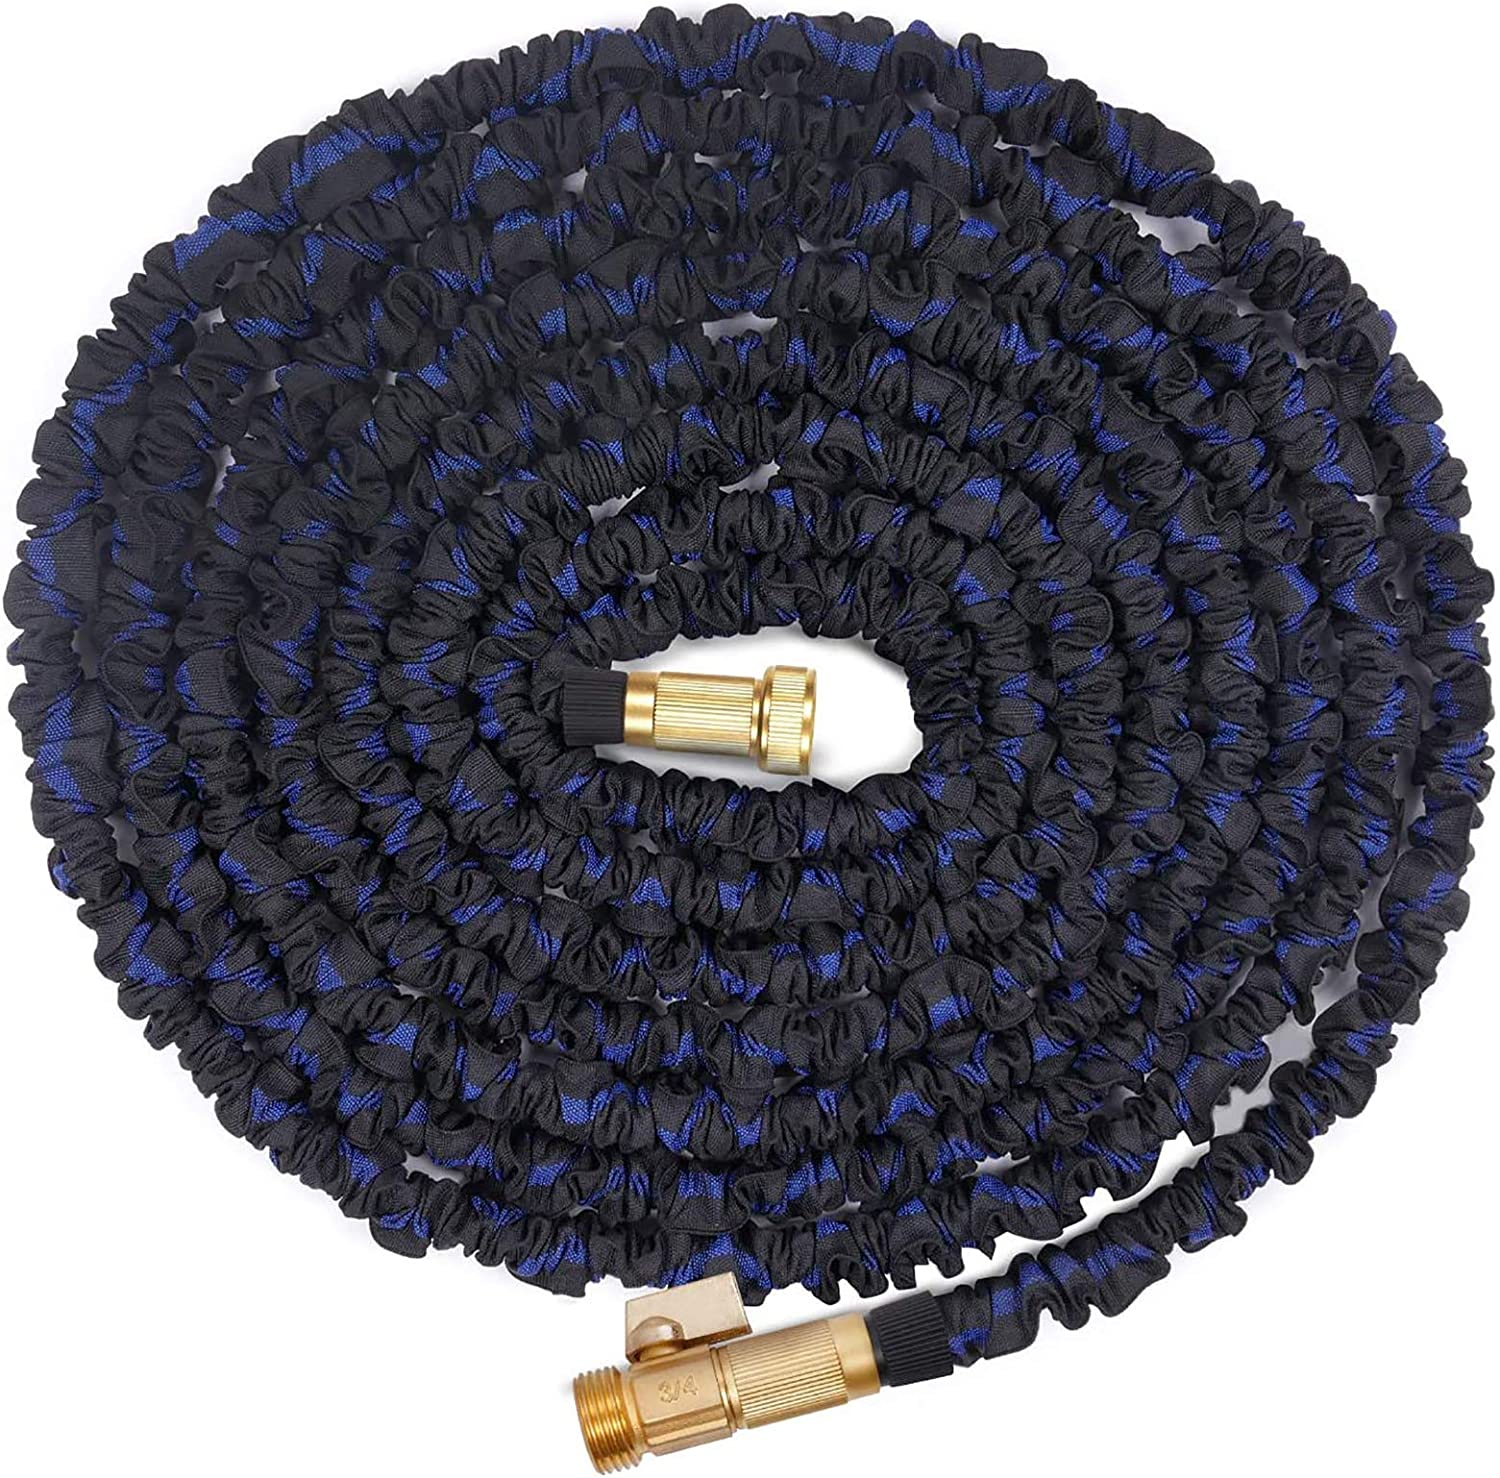 AOFAN Upgraded Expandable Garden Hose 50ft Water Hose Flexible Expanding Water Hose with 3/4